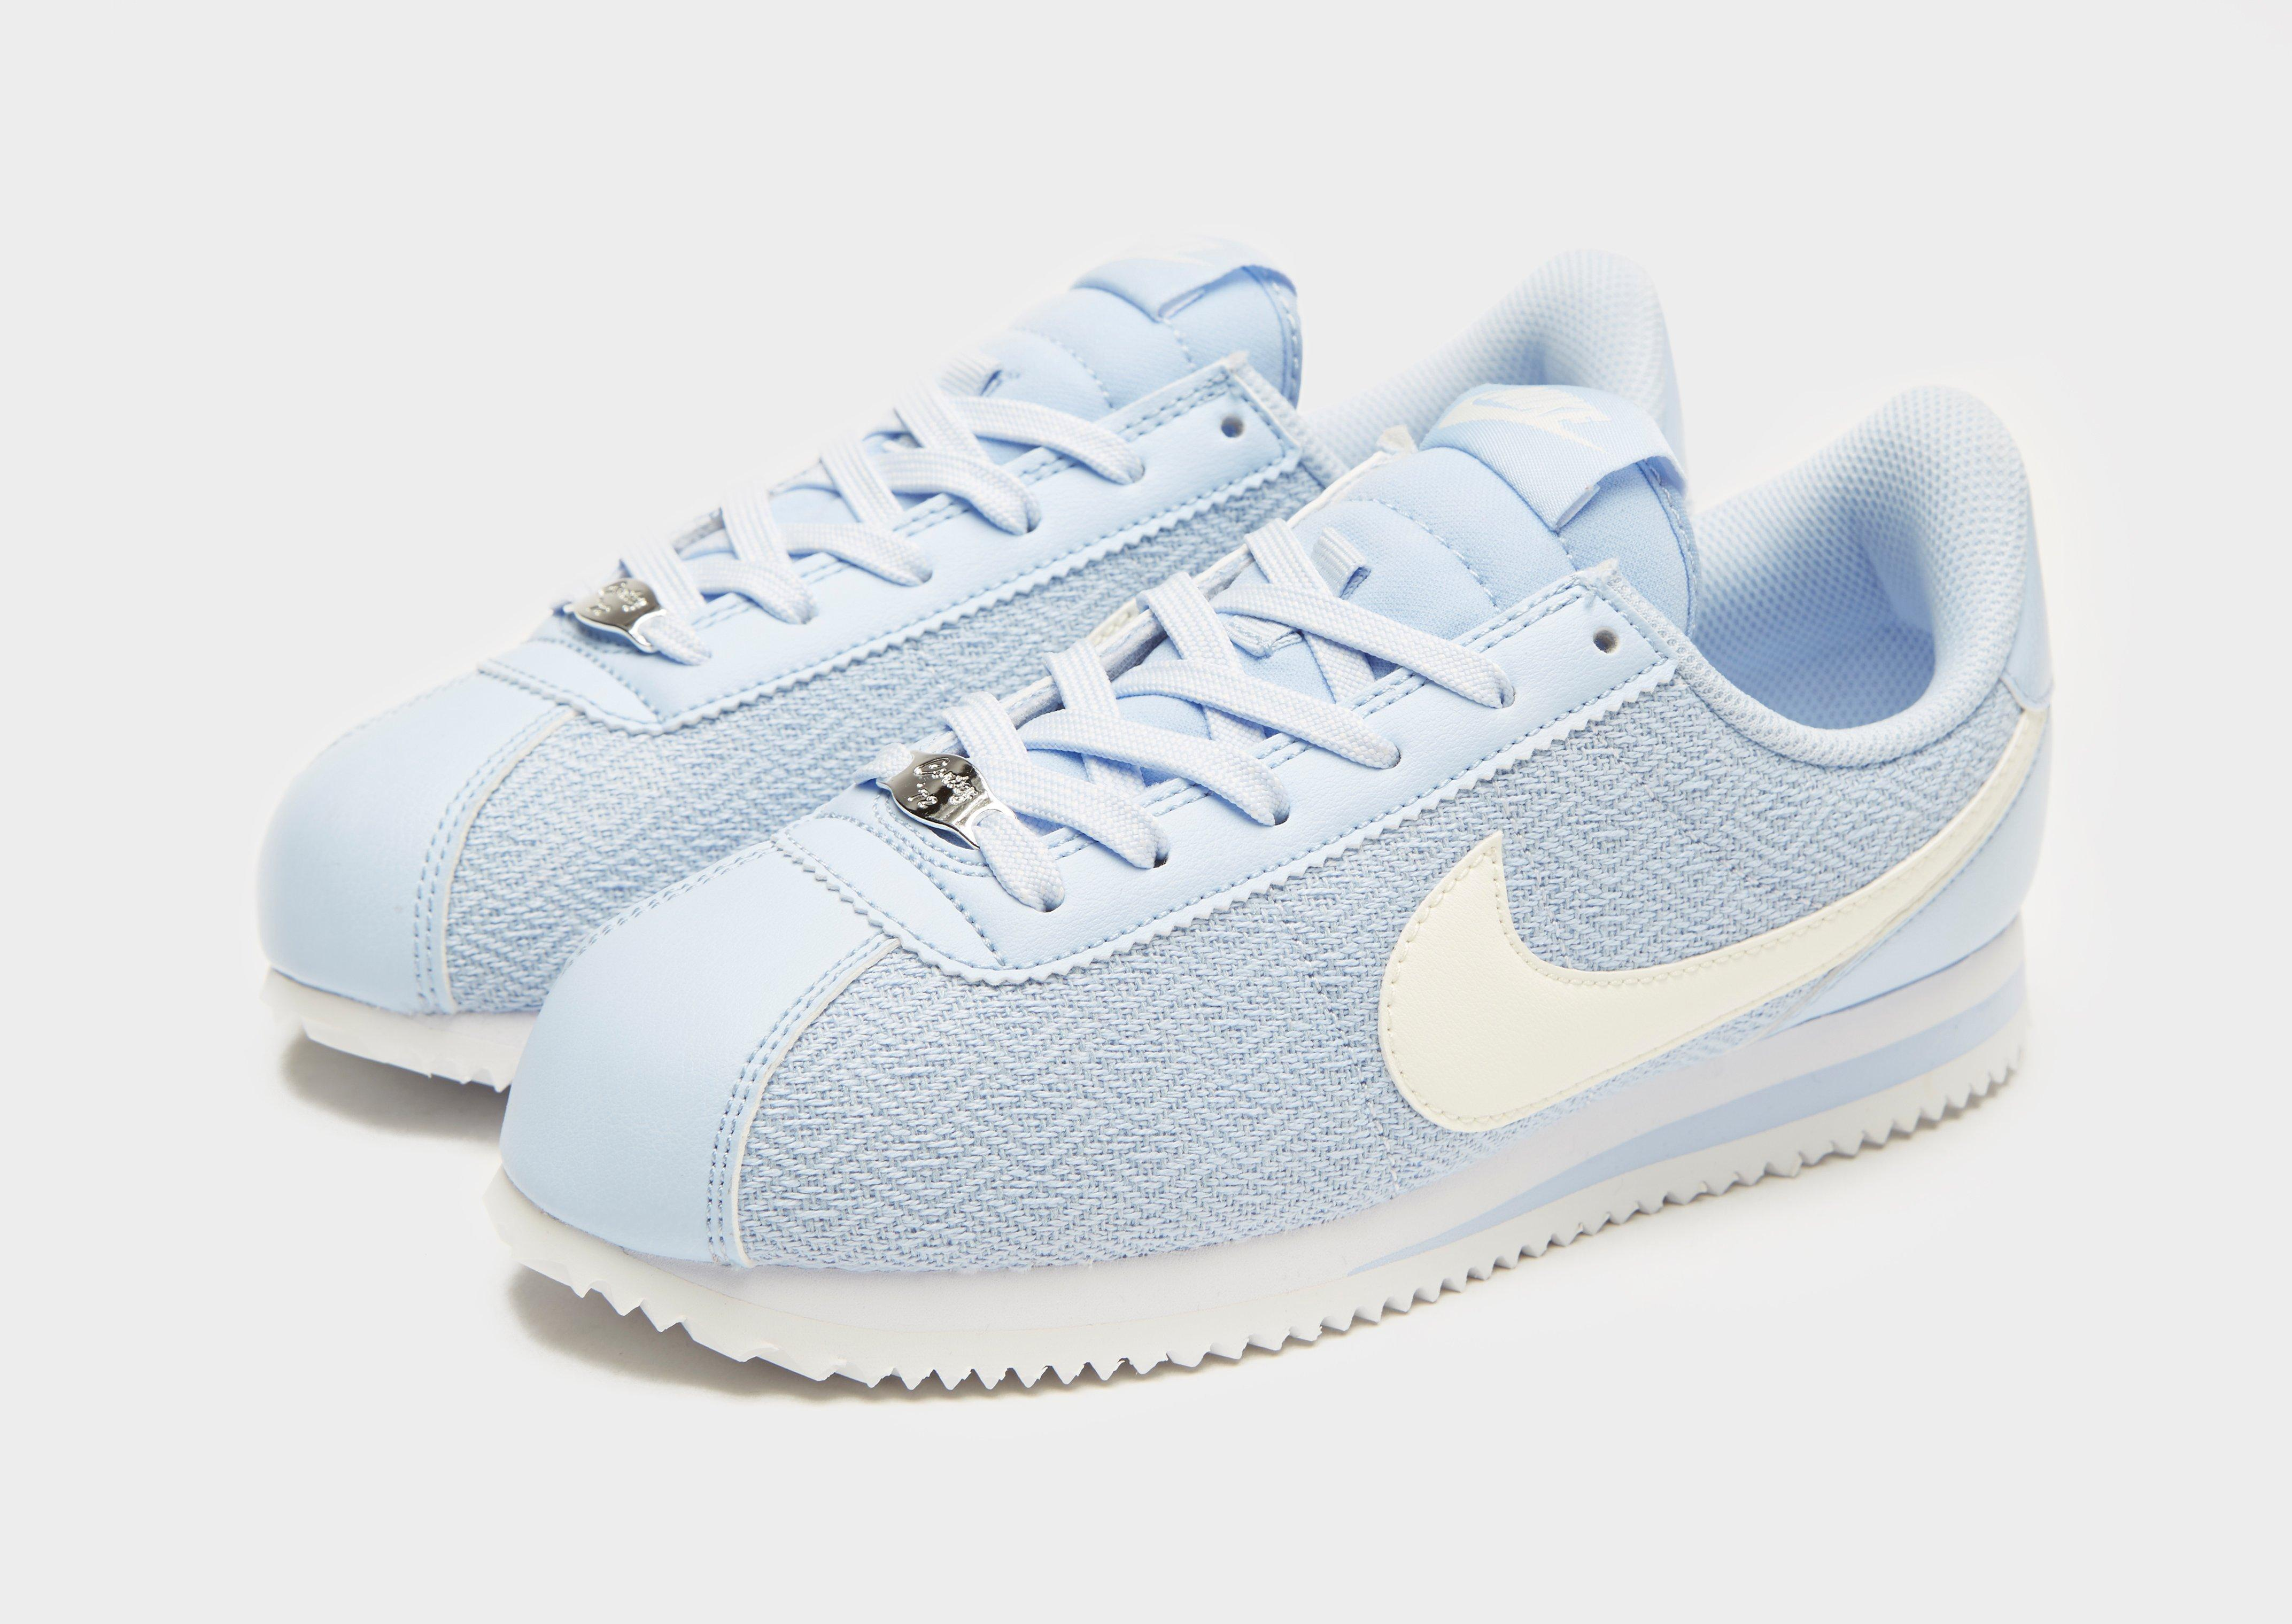 03b0056aecee2b nike 6.0 glow in the dark shoes women Products shown may not grey black grey  black pink and ...